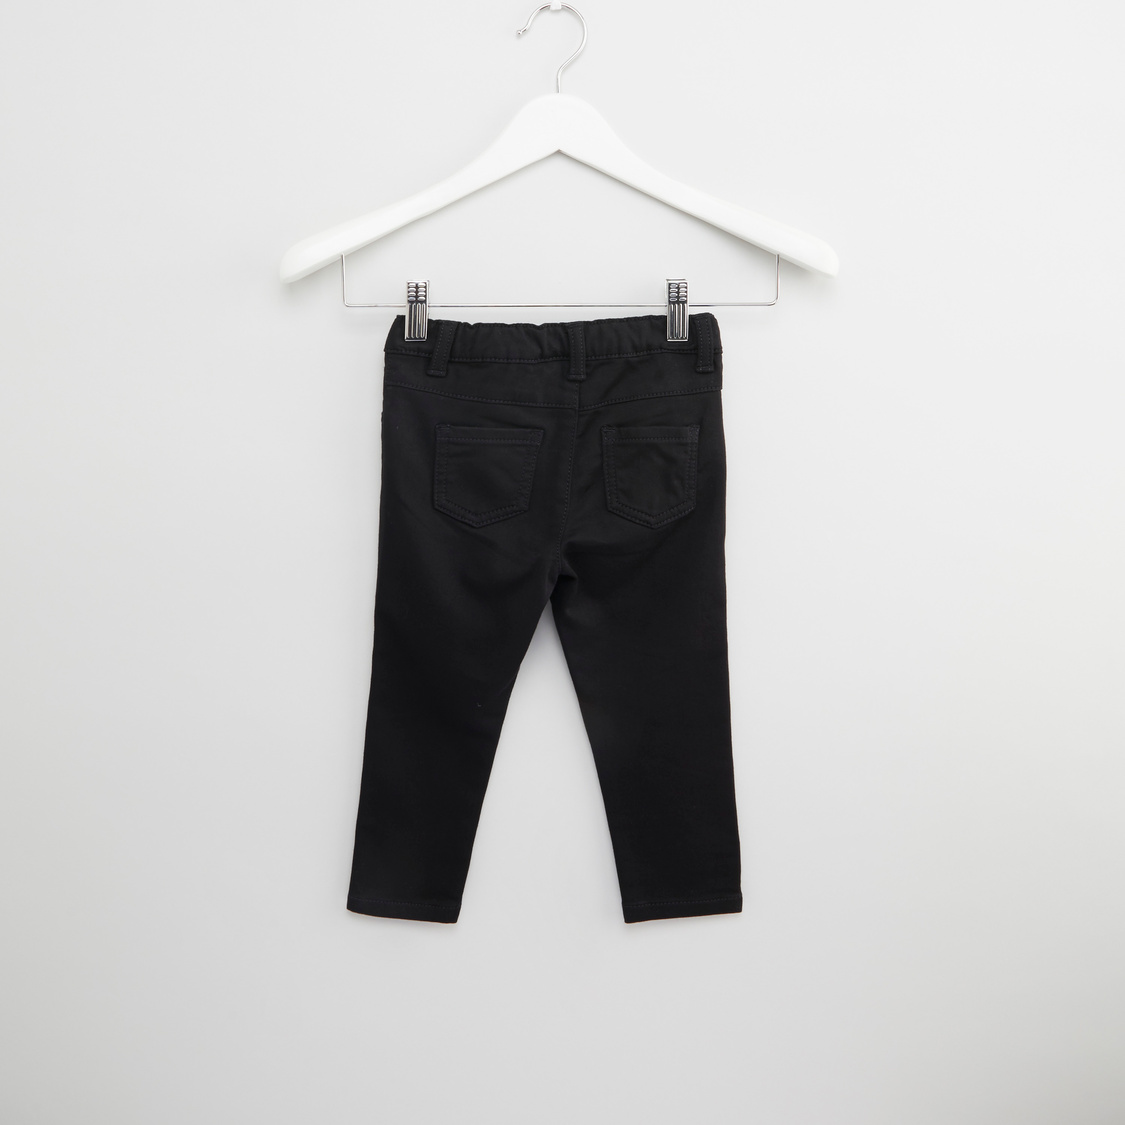 Plain Pants with Pocket Detail and Belt Loops